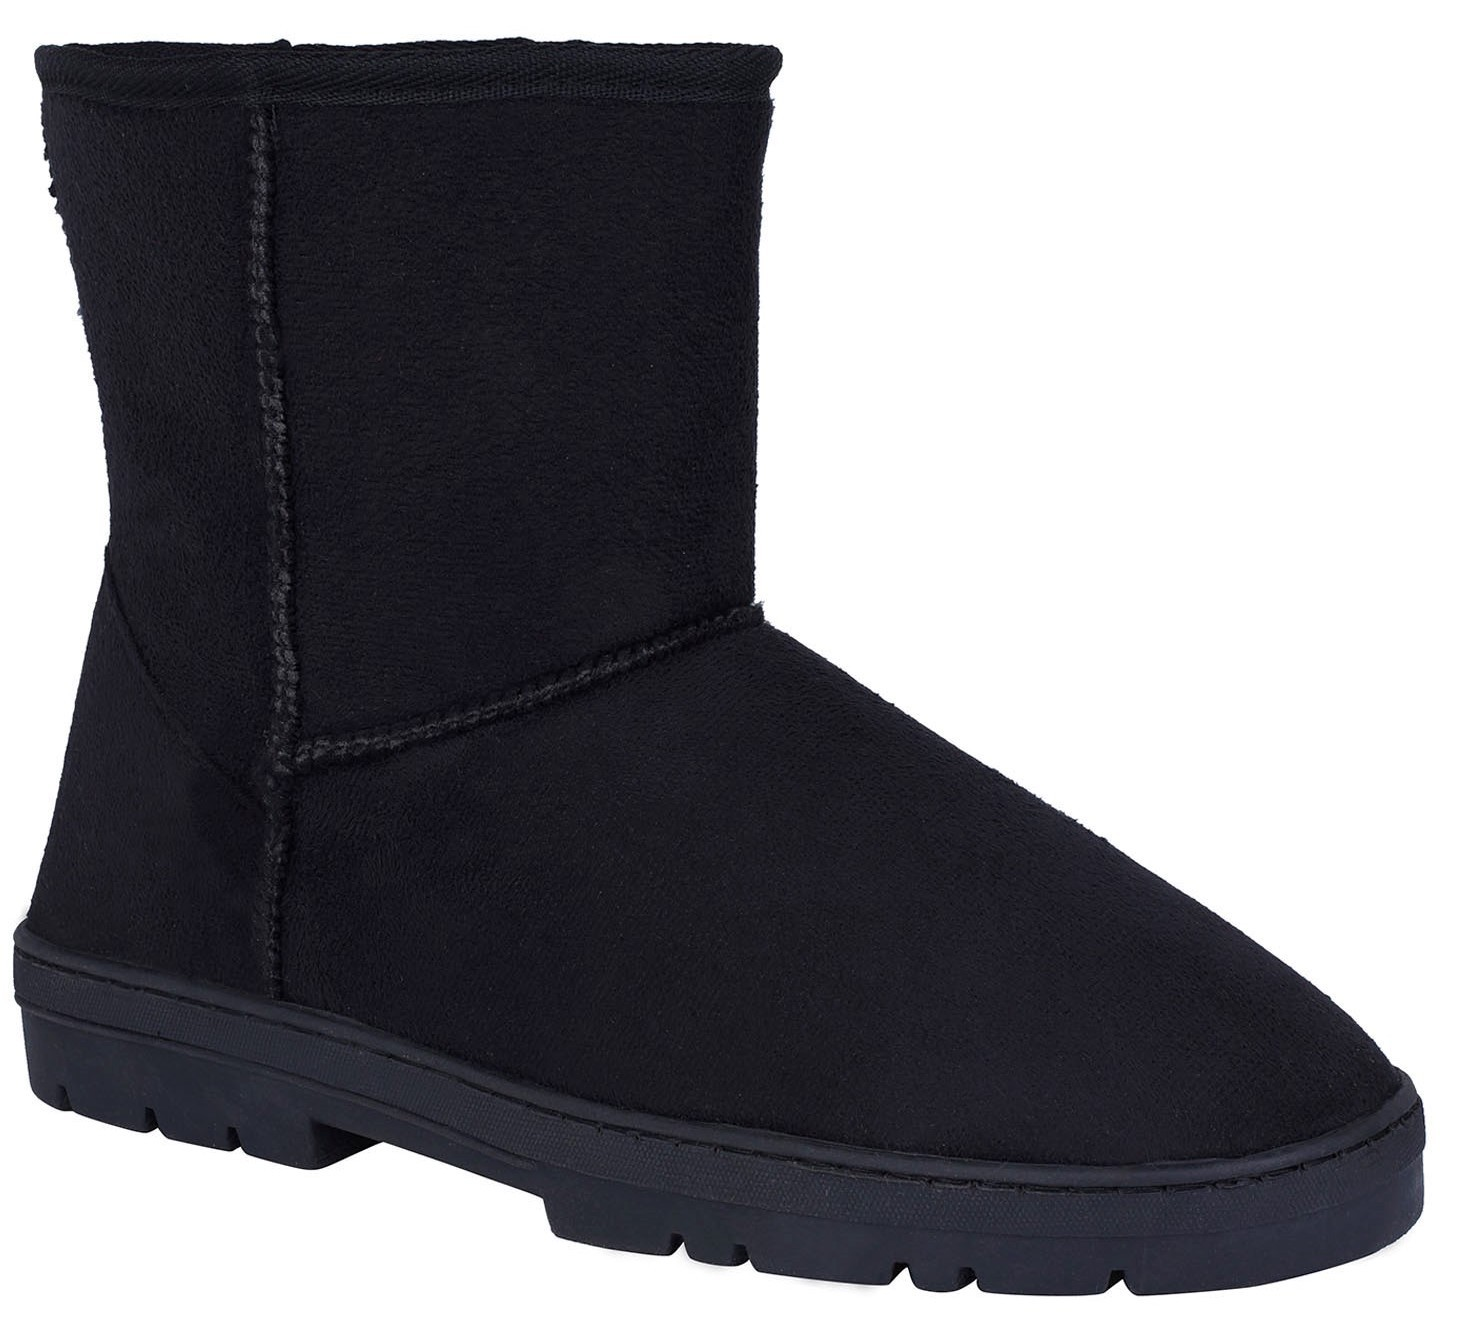 6d25c2069d7 WOODLANDS Forbes Mid Boots Classic Warm Winter Shoes Slippers Moccasins Non  Slip